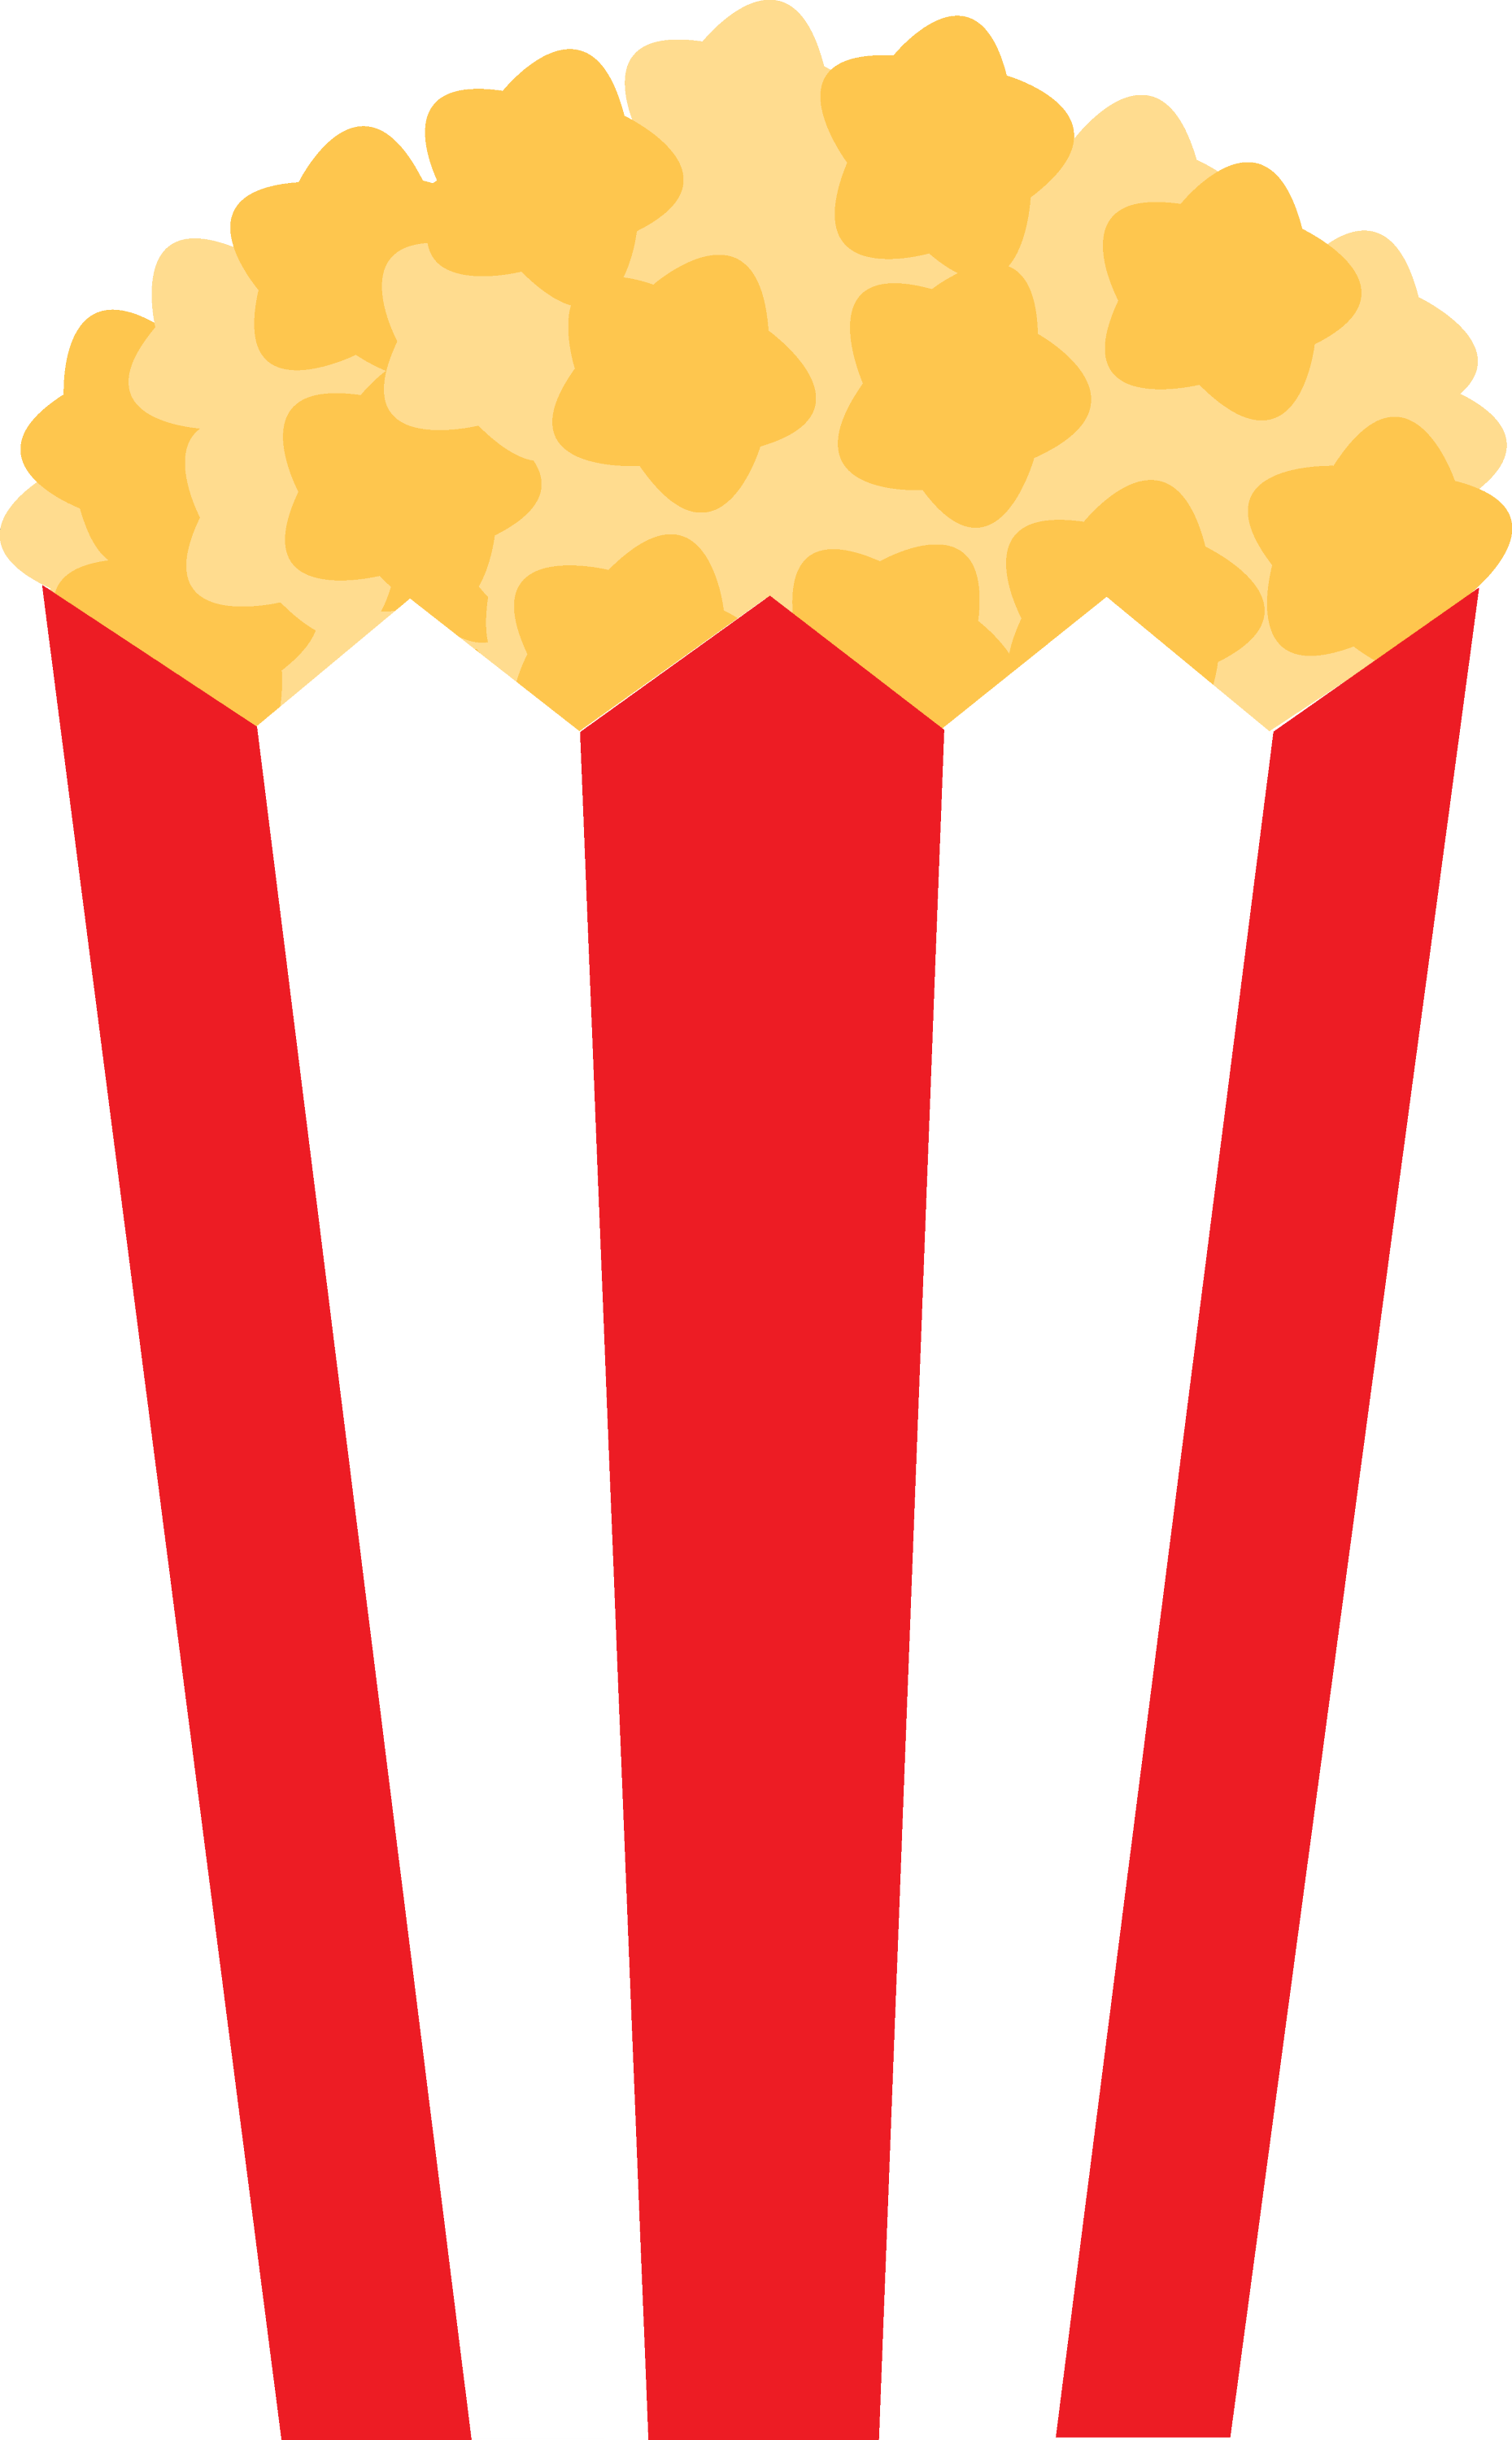 bag of popcorn free clip art rh sweetclipart com free clip art popcorn kernel popcorn clip art free download